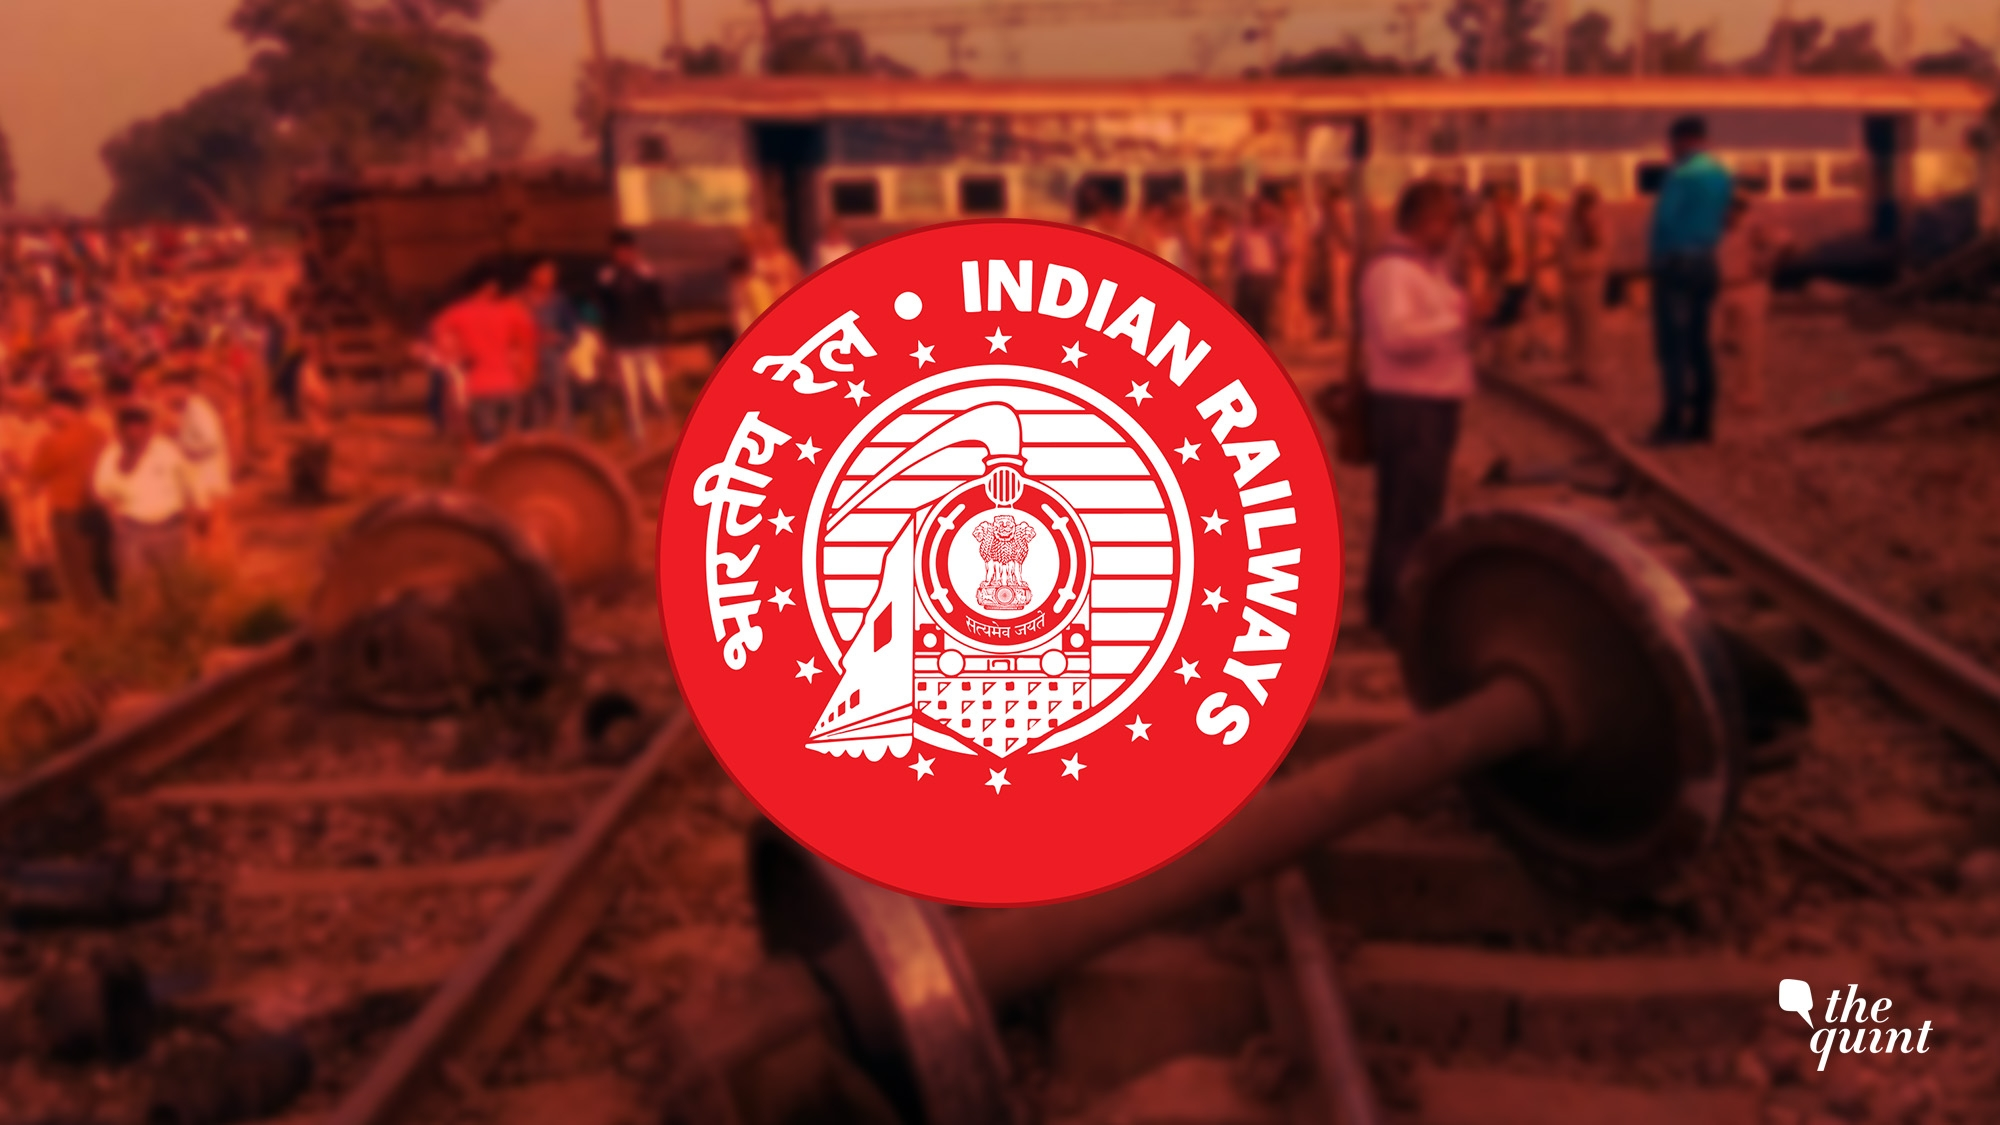 Amritsar Tragedy: Why Indian Railways Ought to Share Blame